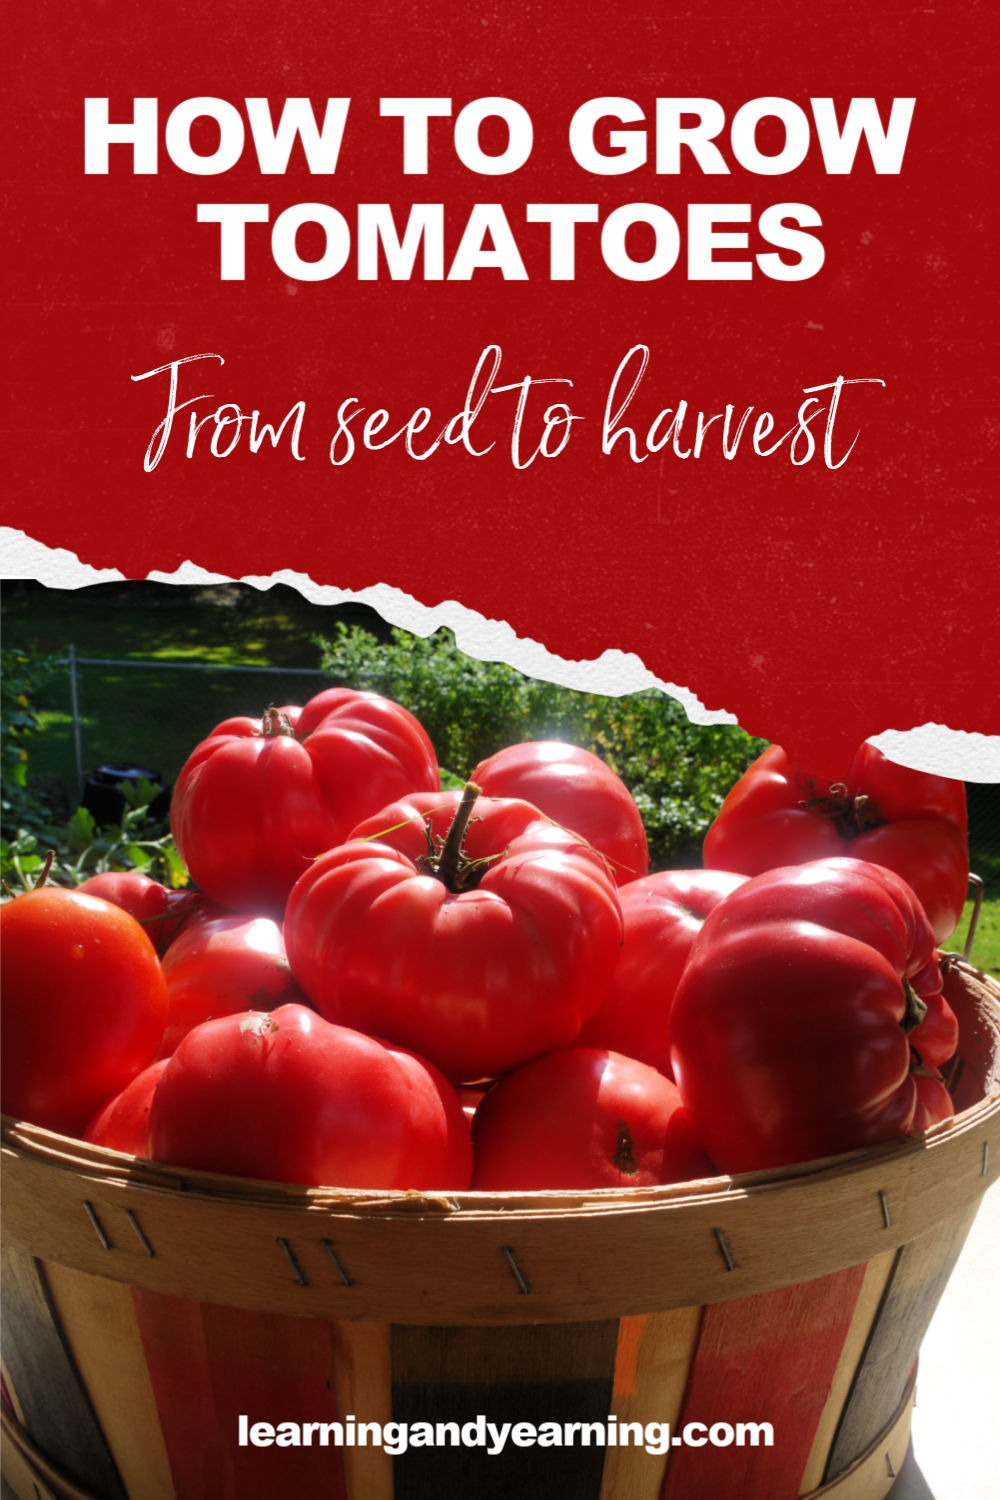 How to grow tomatoes, from seed to harvest!